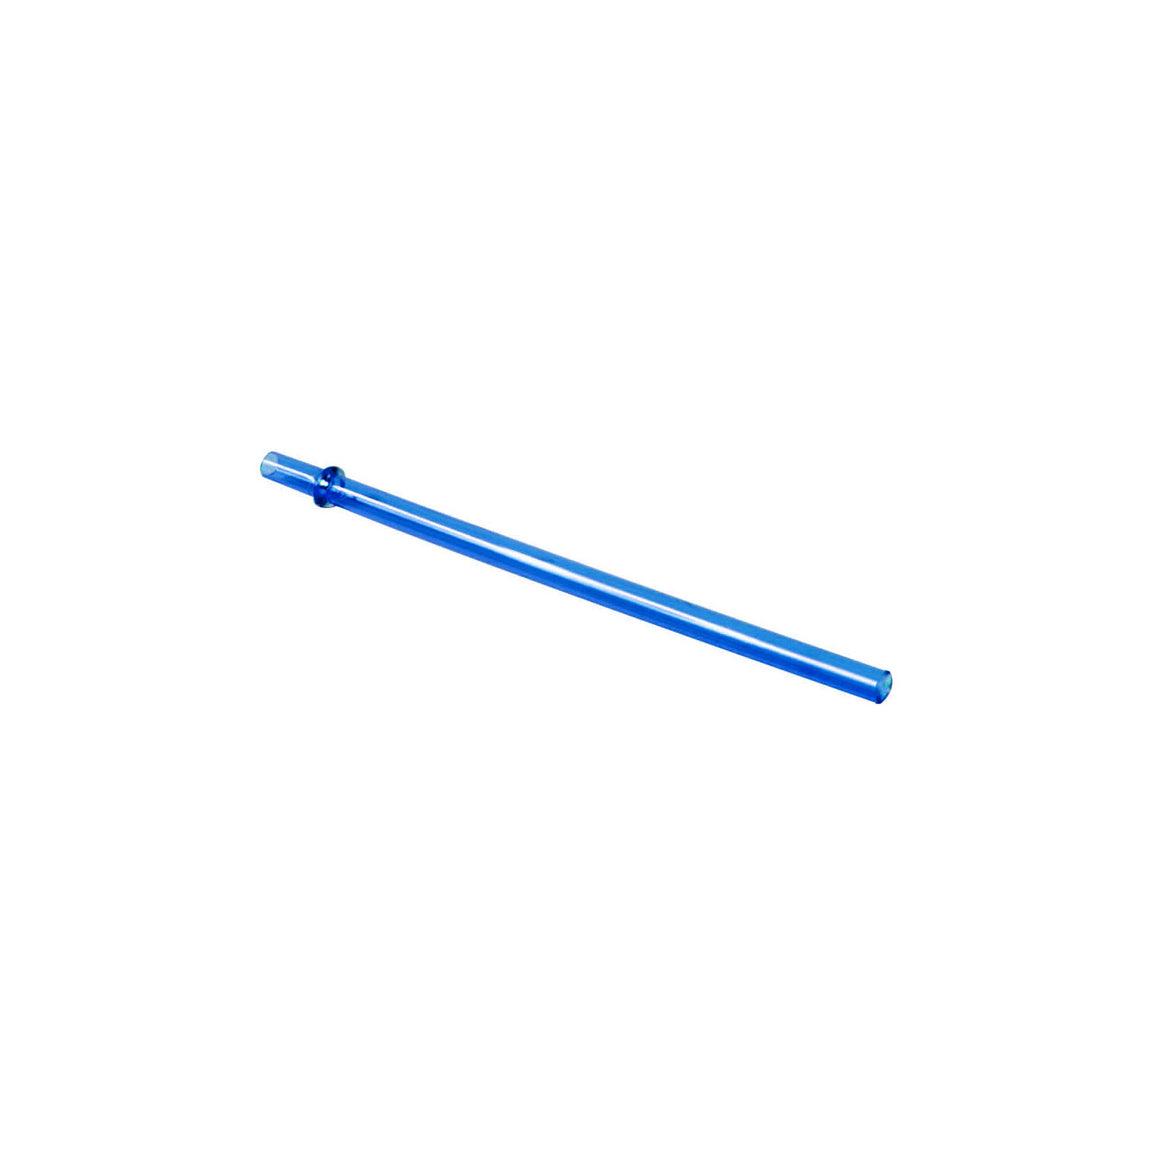 Cool Gear | 6.5-Inch Replacement Straws For Coolgearcans in Dark Blue